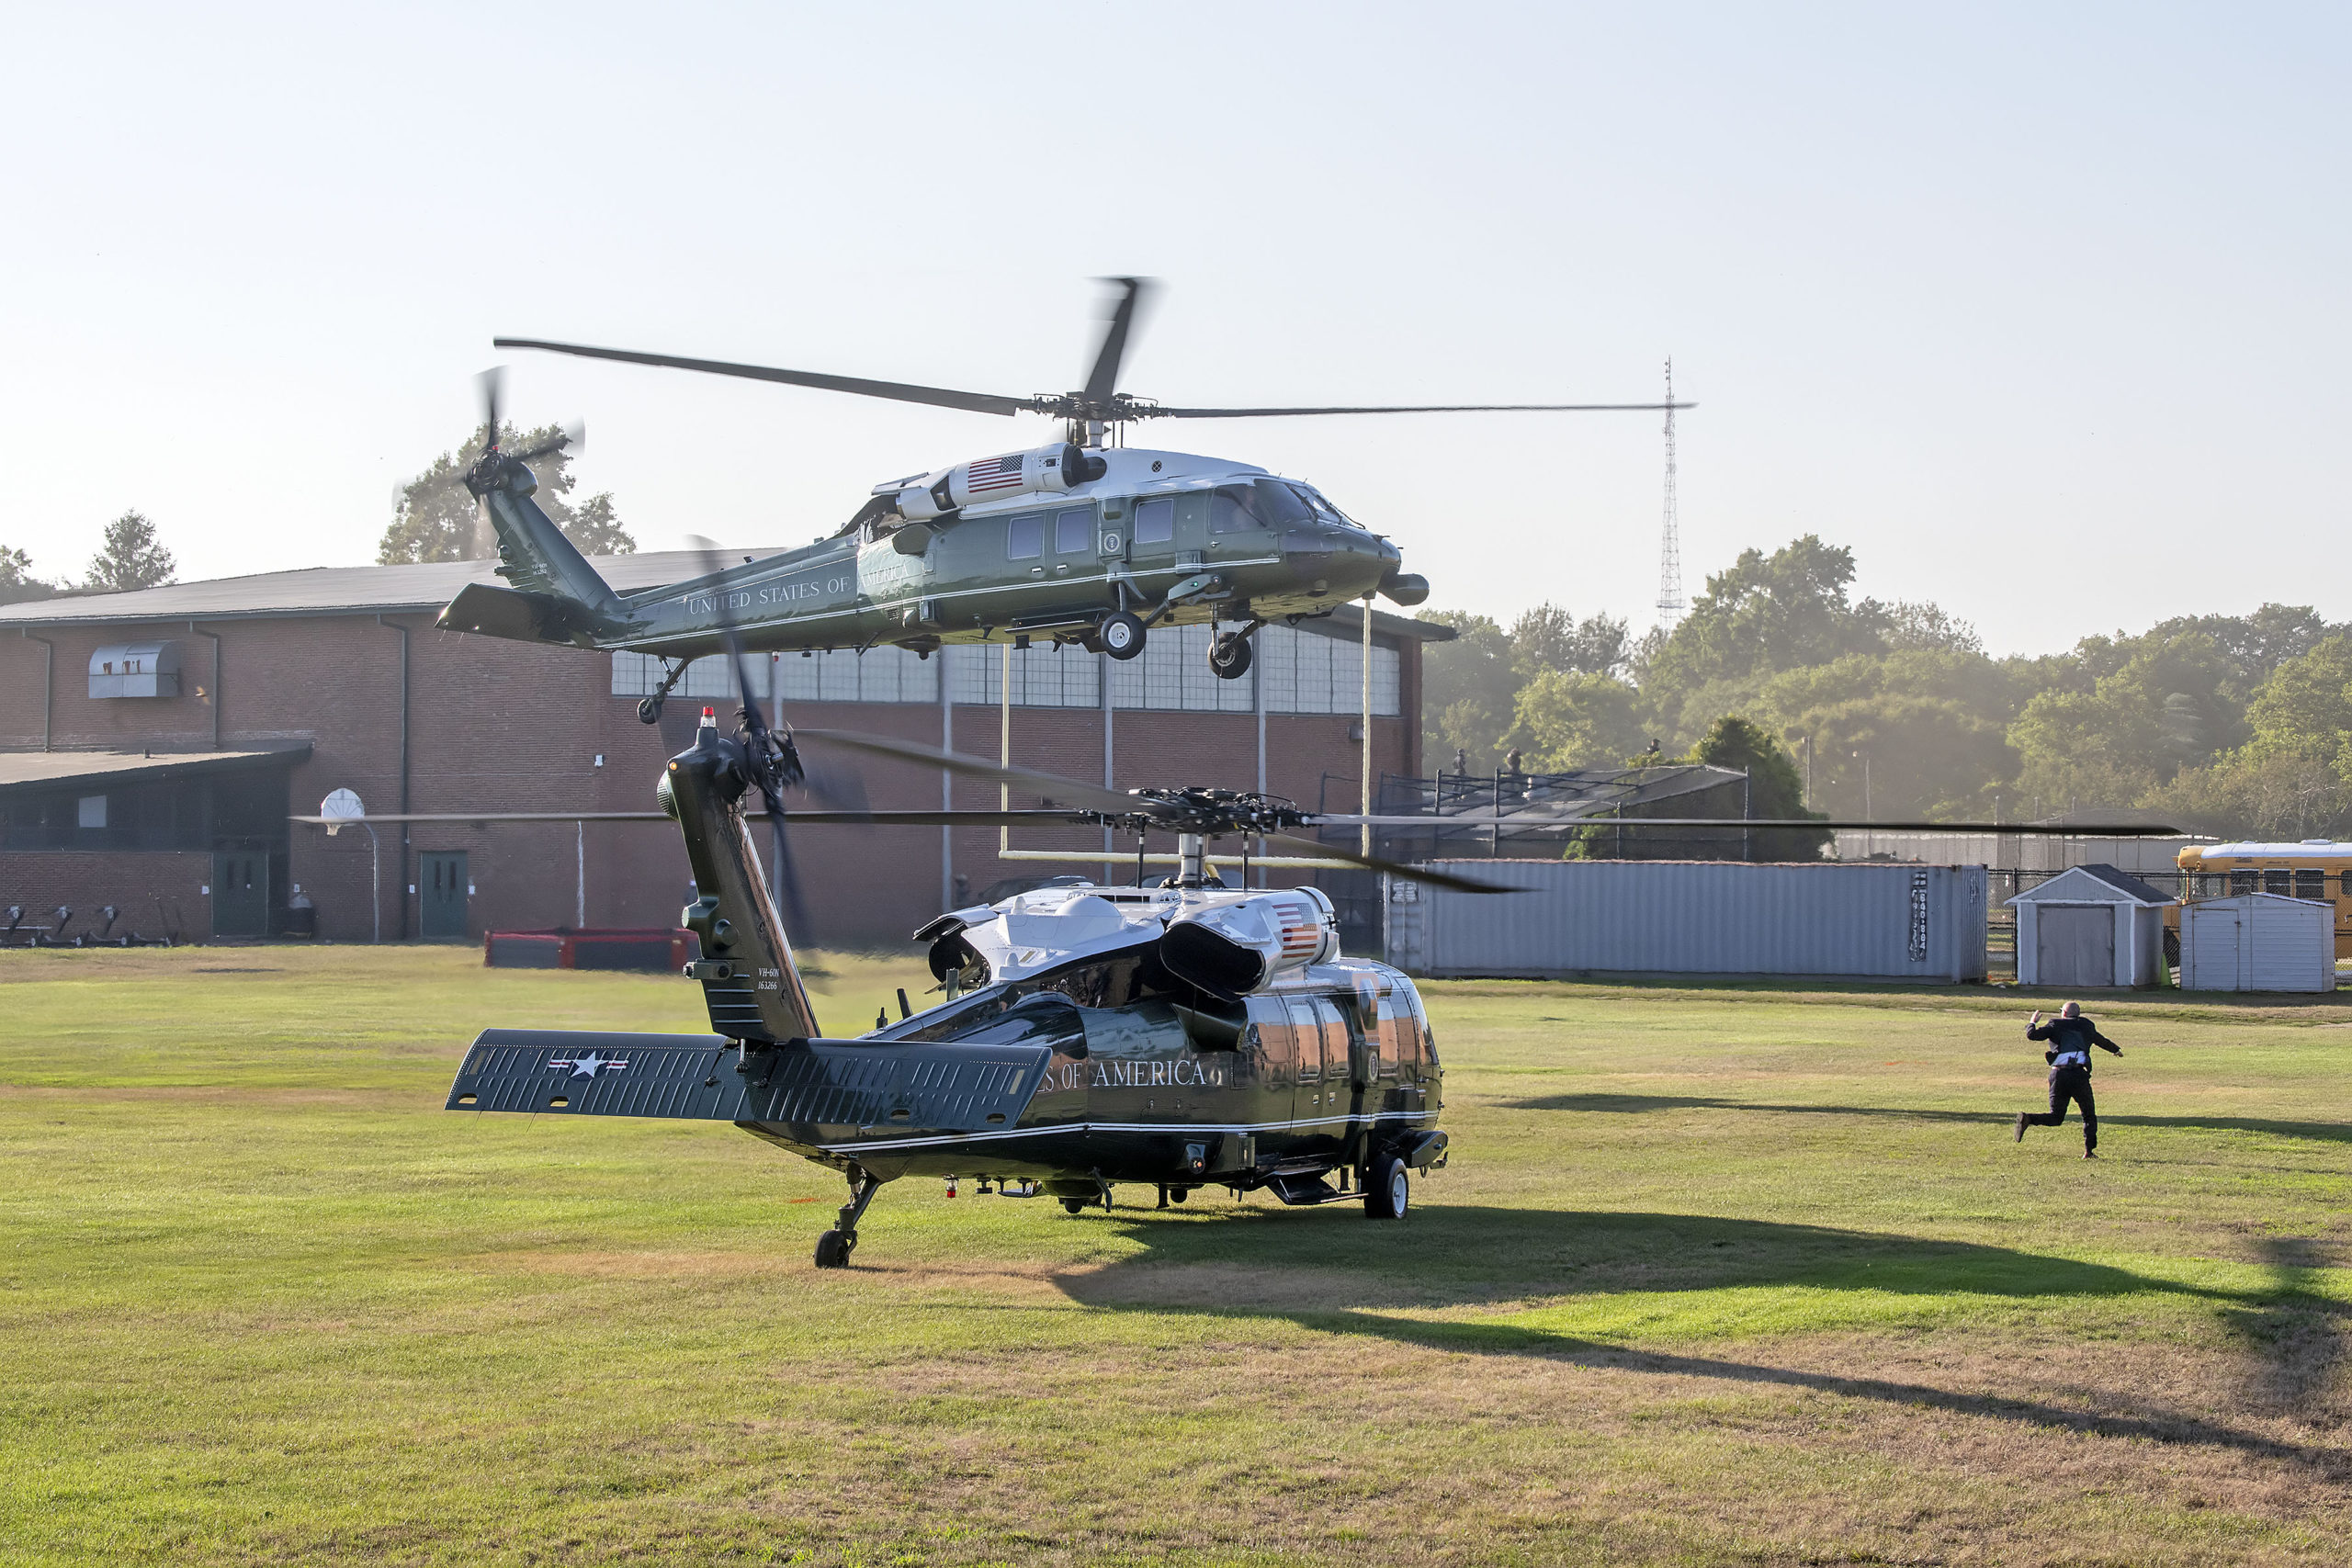 The president's helicopter, Marine One, and its escorts landed at Southampton High School on Saturday afternoon under heavy security.